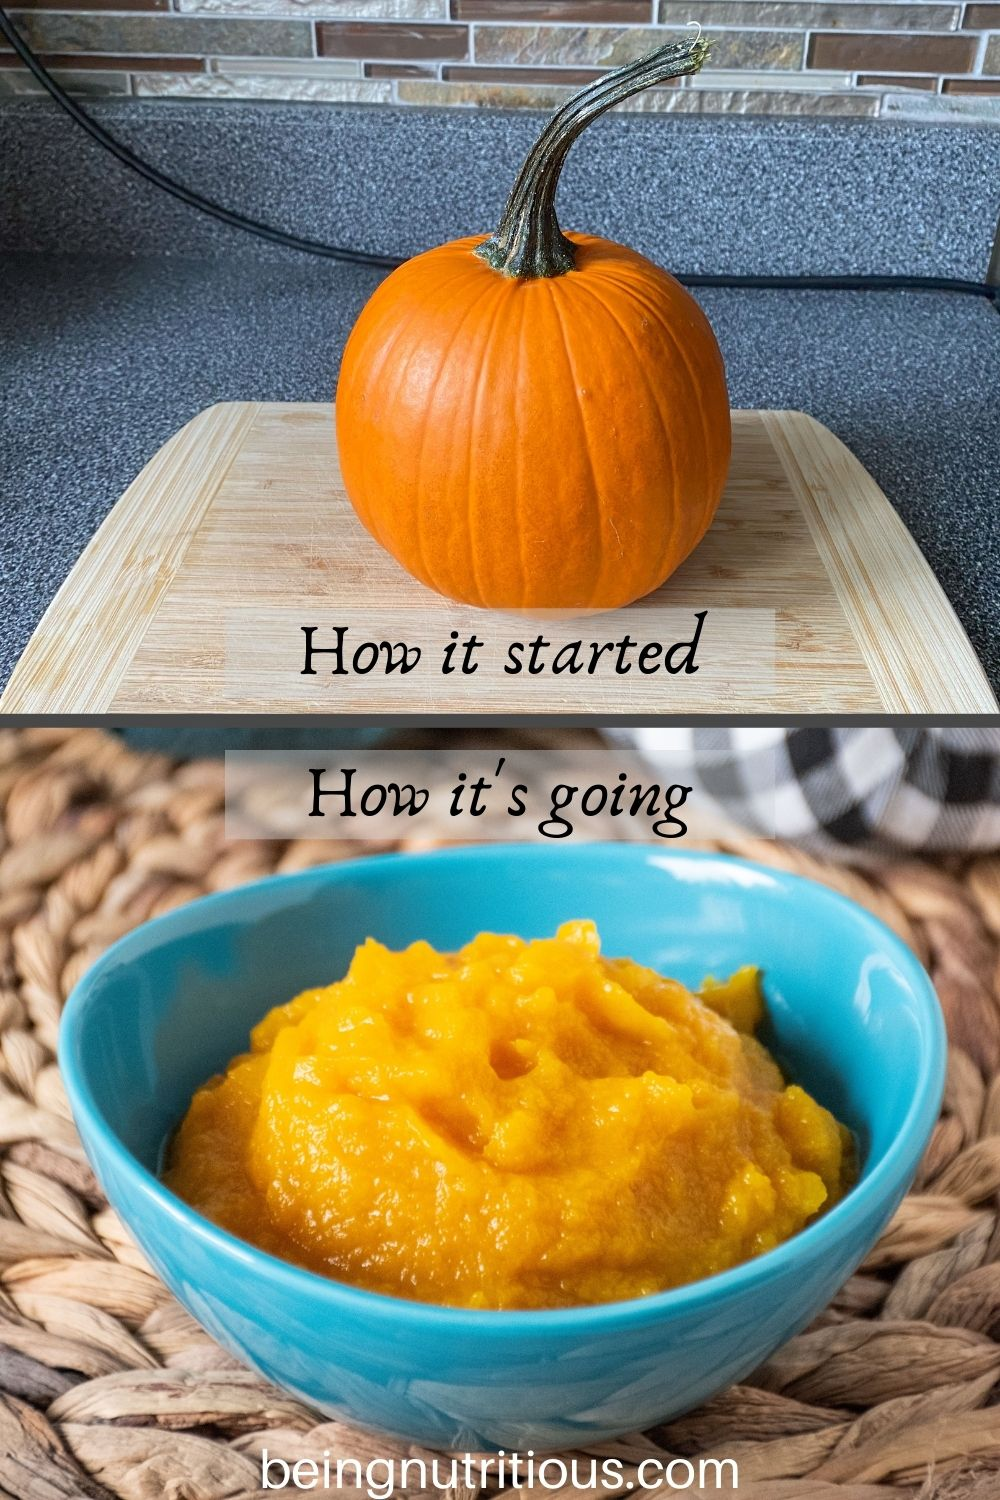 Split image. Top image of a pie pumpkin with text overlay: how it started. Bottom image of pumpkin puree in a blue bowl with text overlay: how it's going.